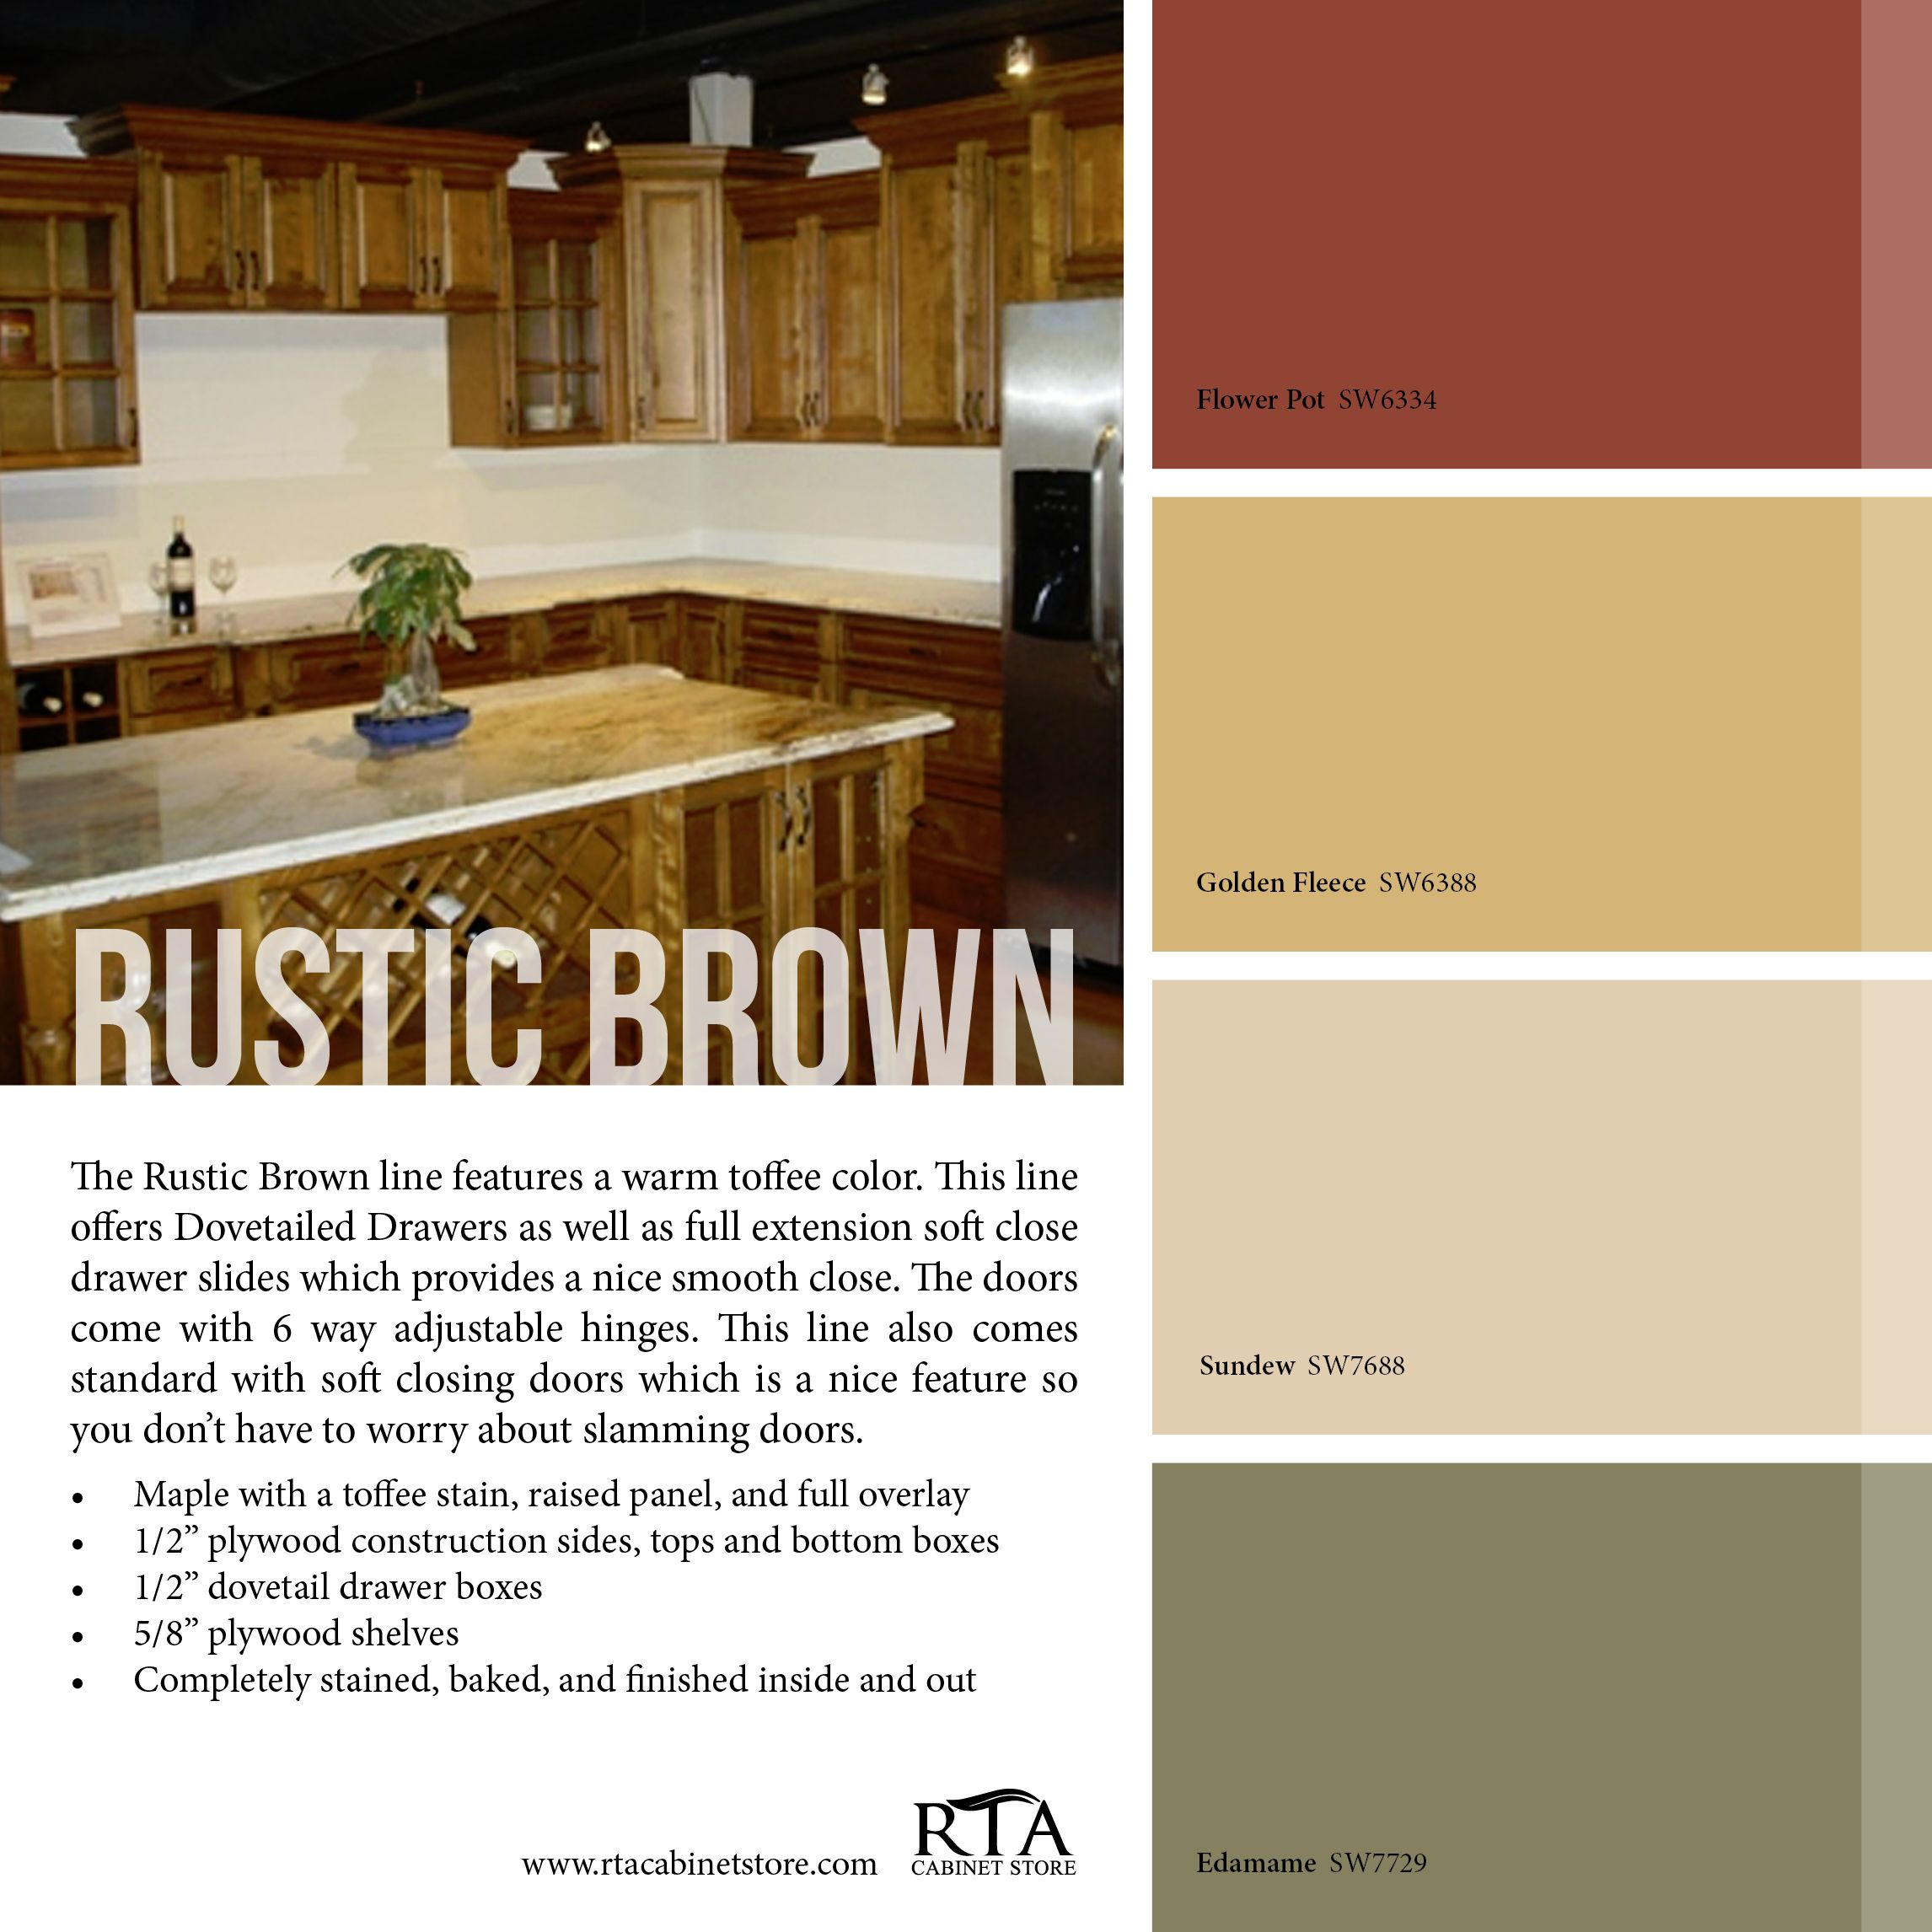 Color Palette To Go With Our Rustic Brown Kitchen Cabinet Line